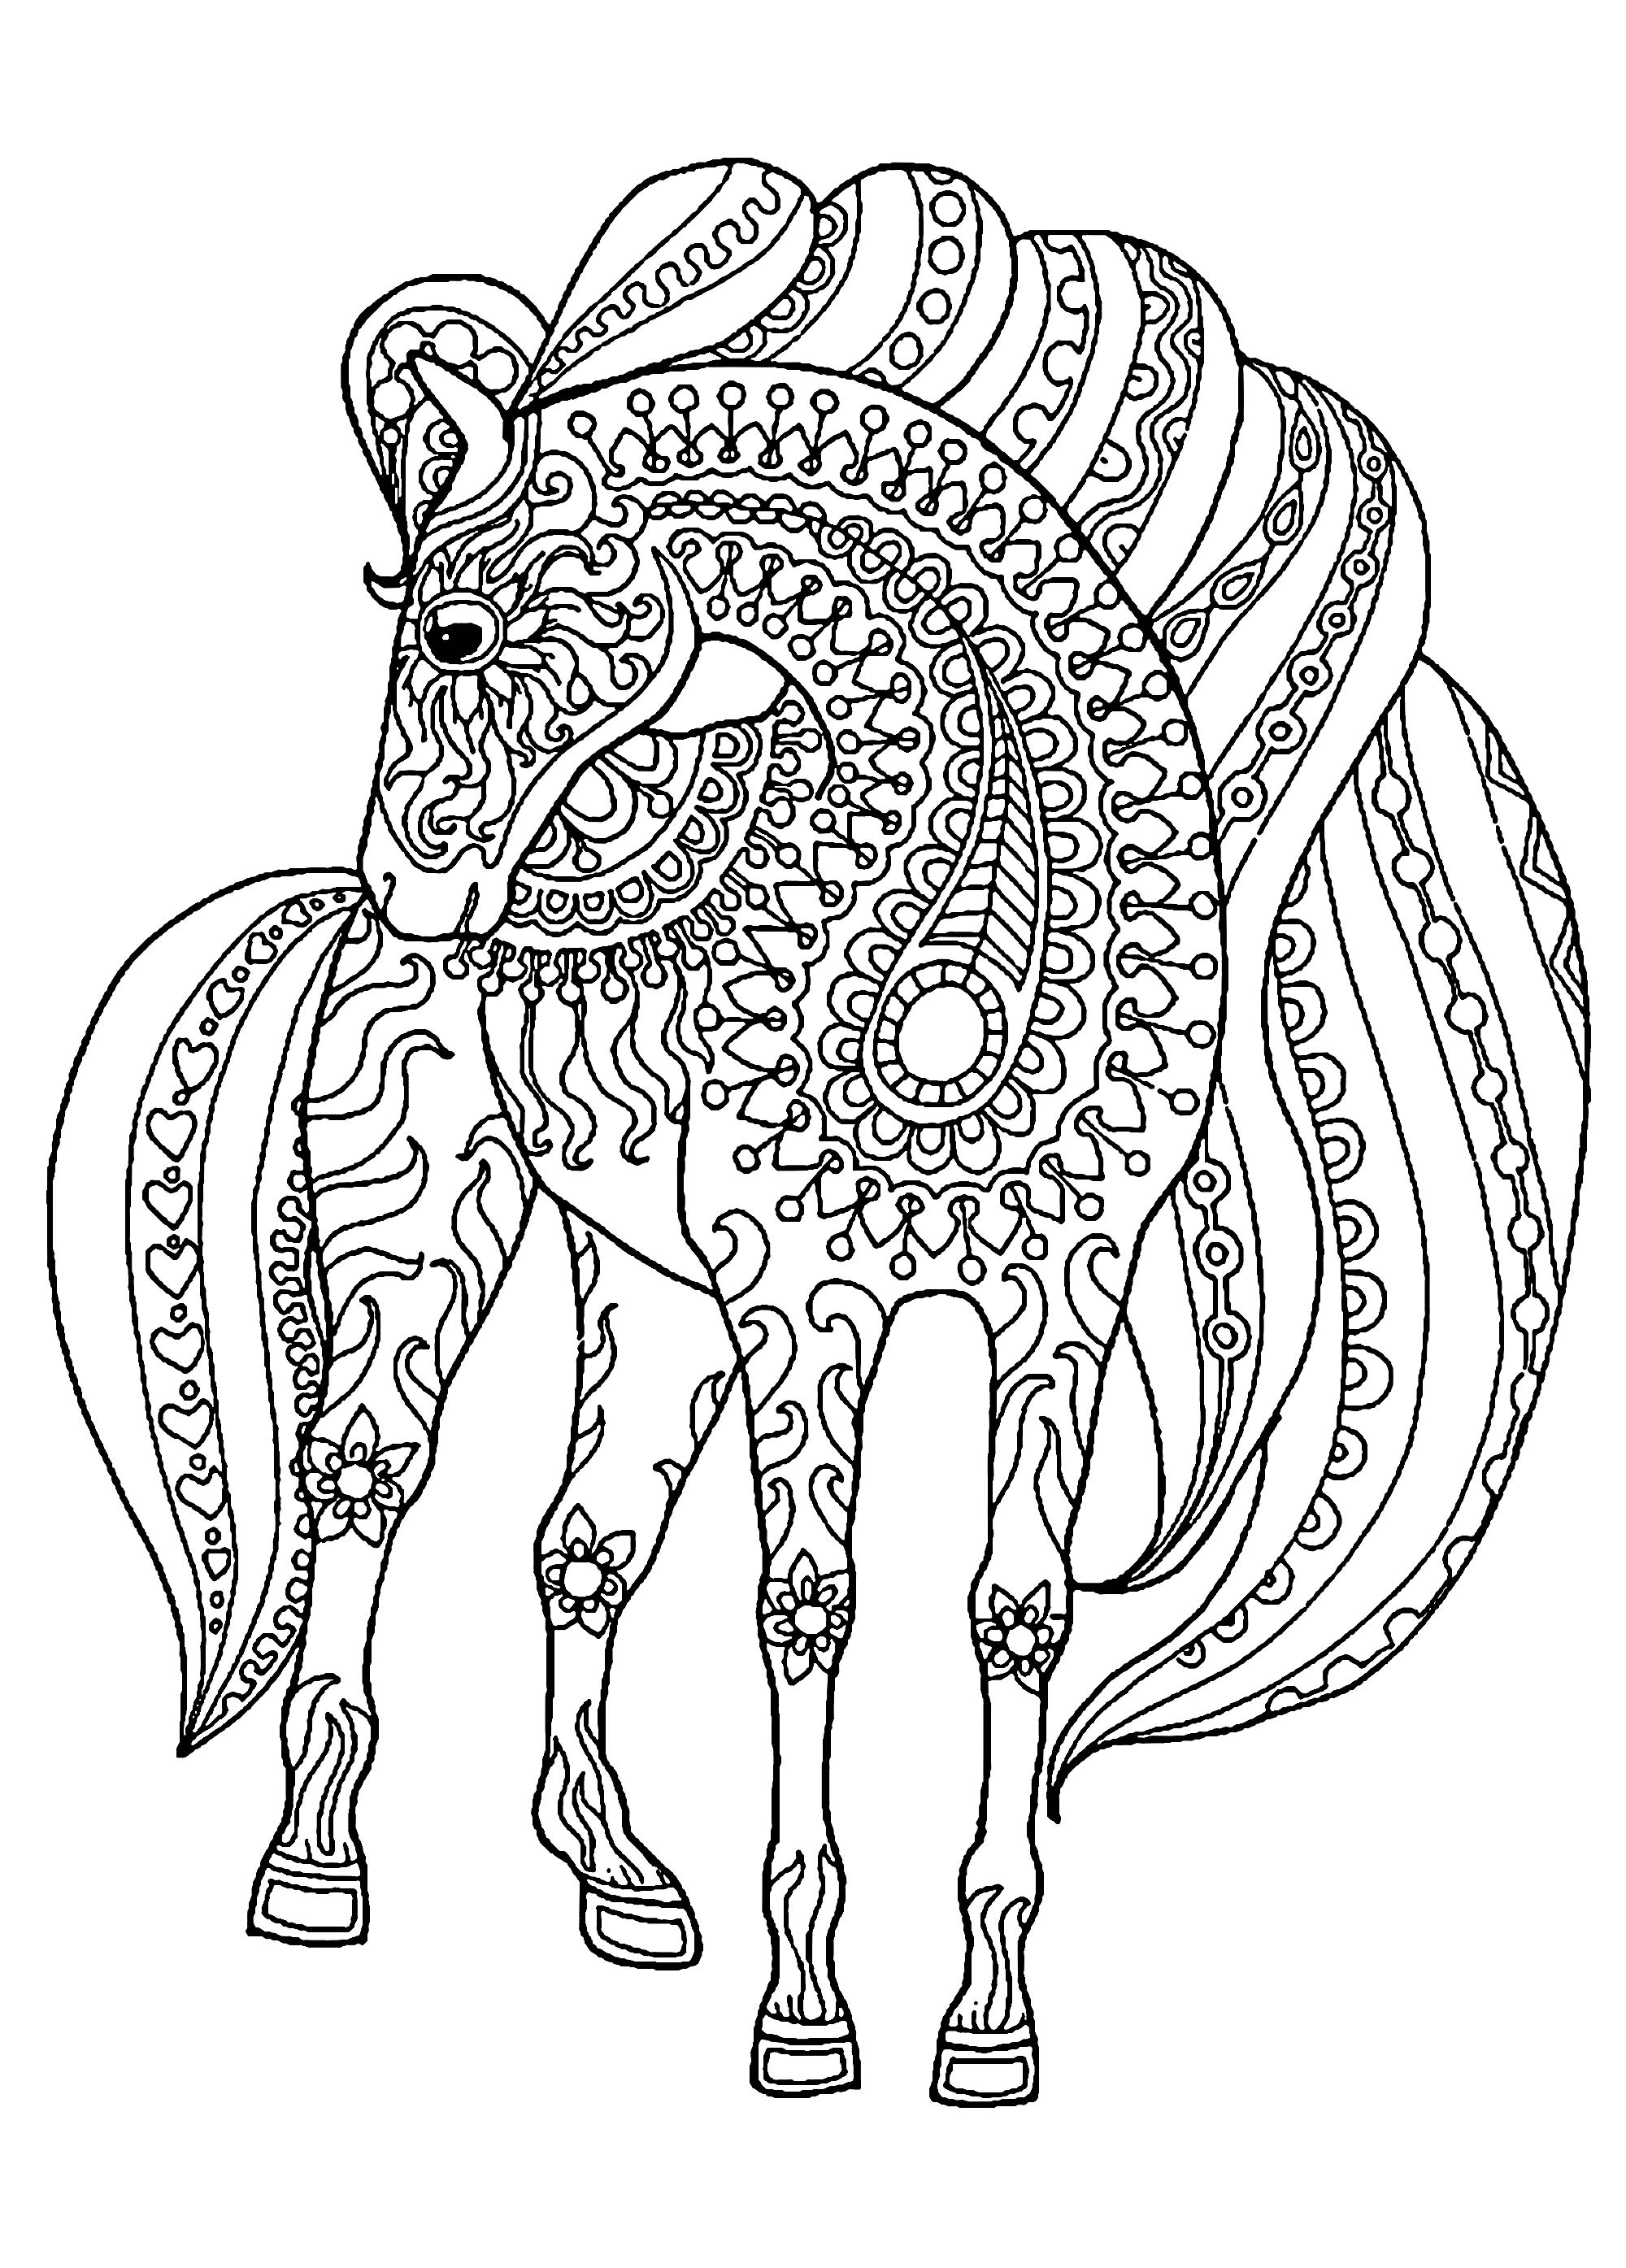 horse coloring pages for kids horse color sheet for kids activity shelter pages coloring for horse kids